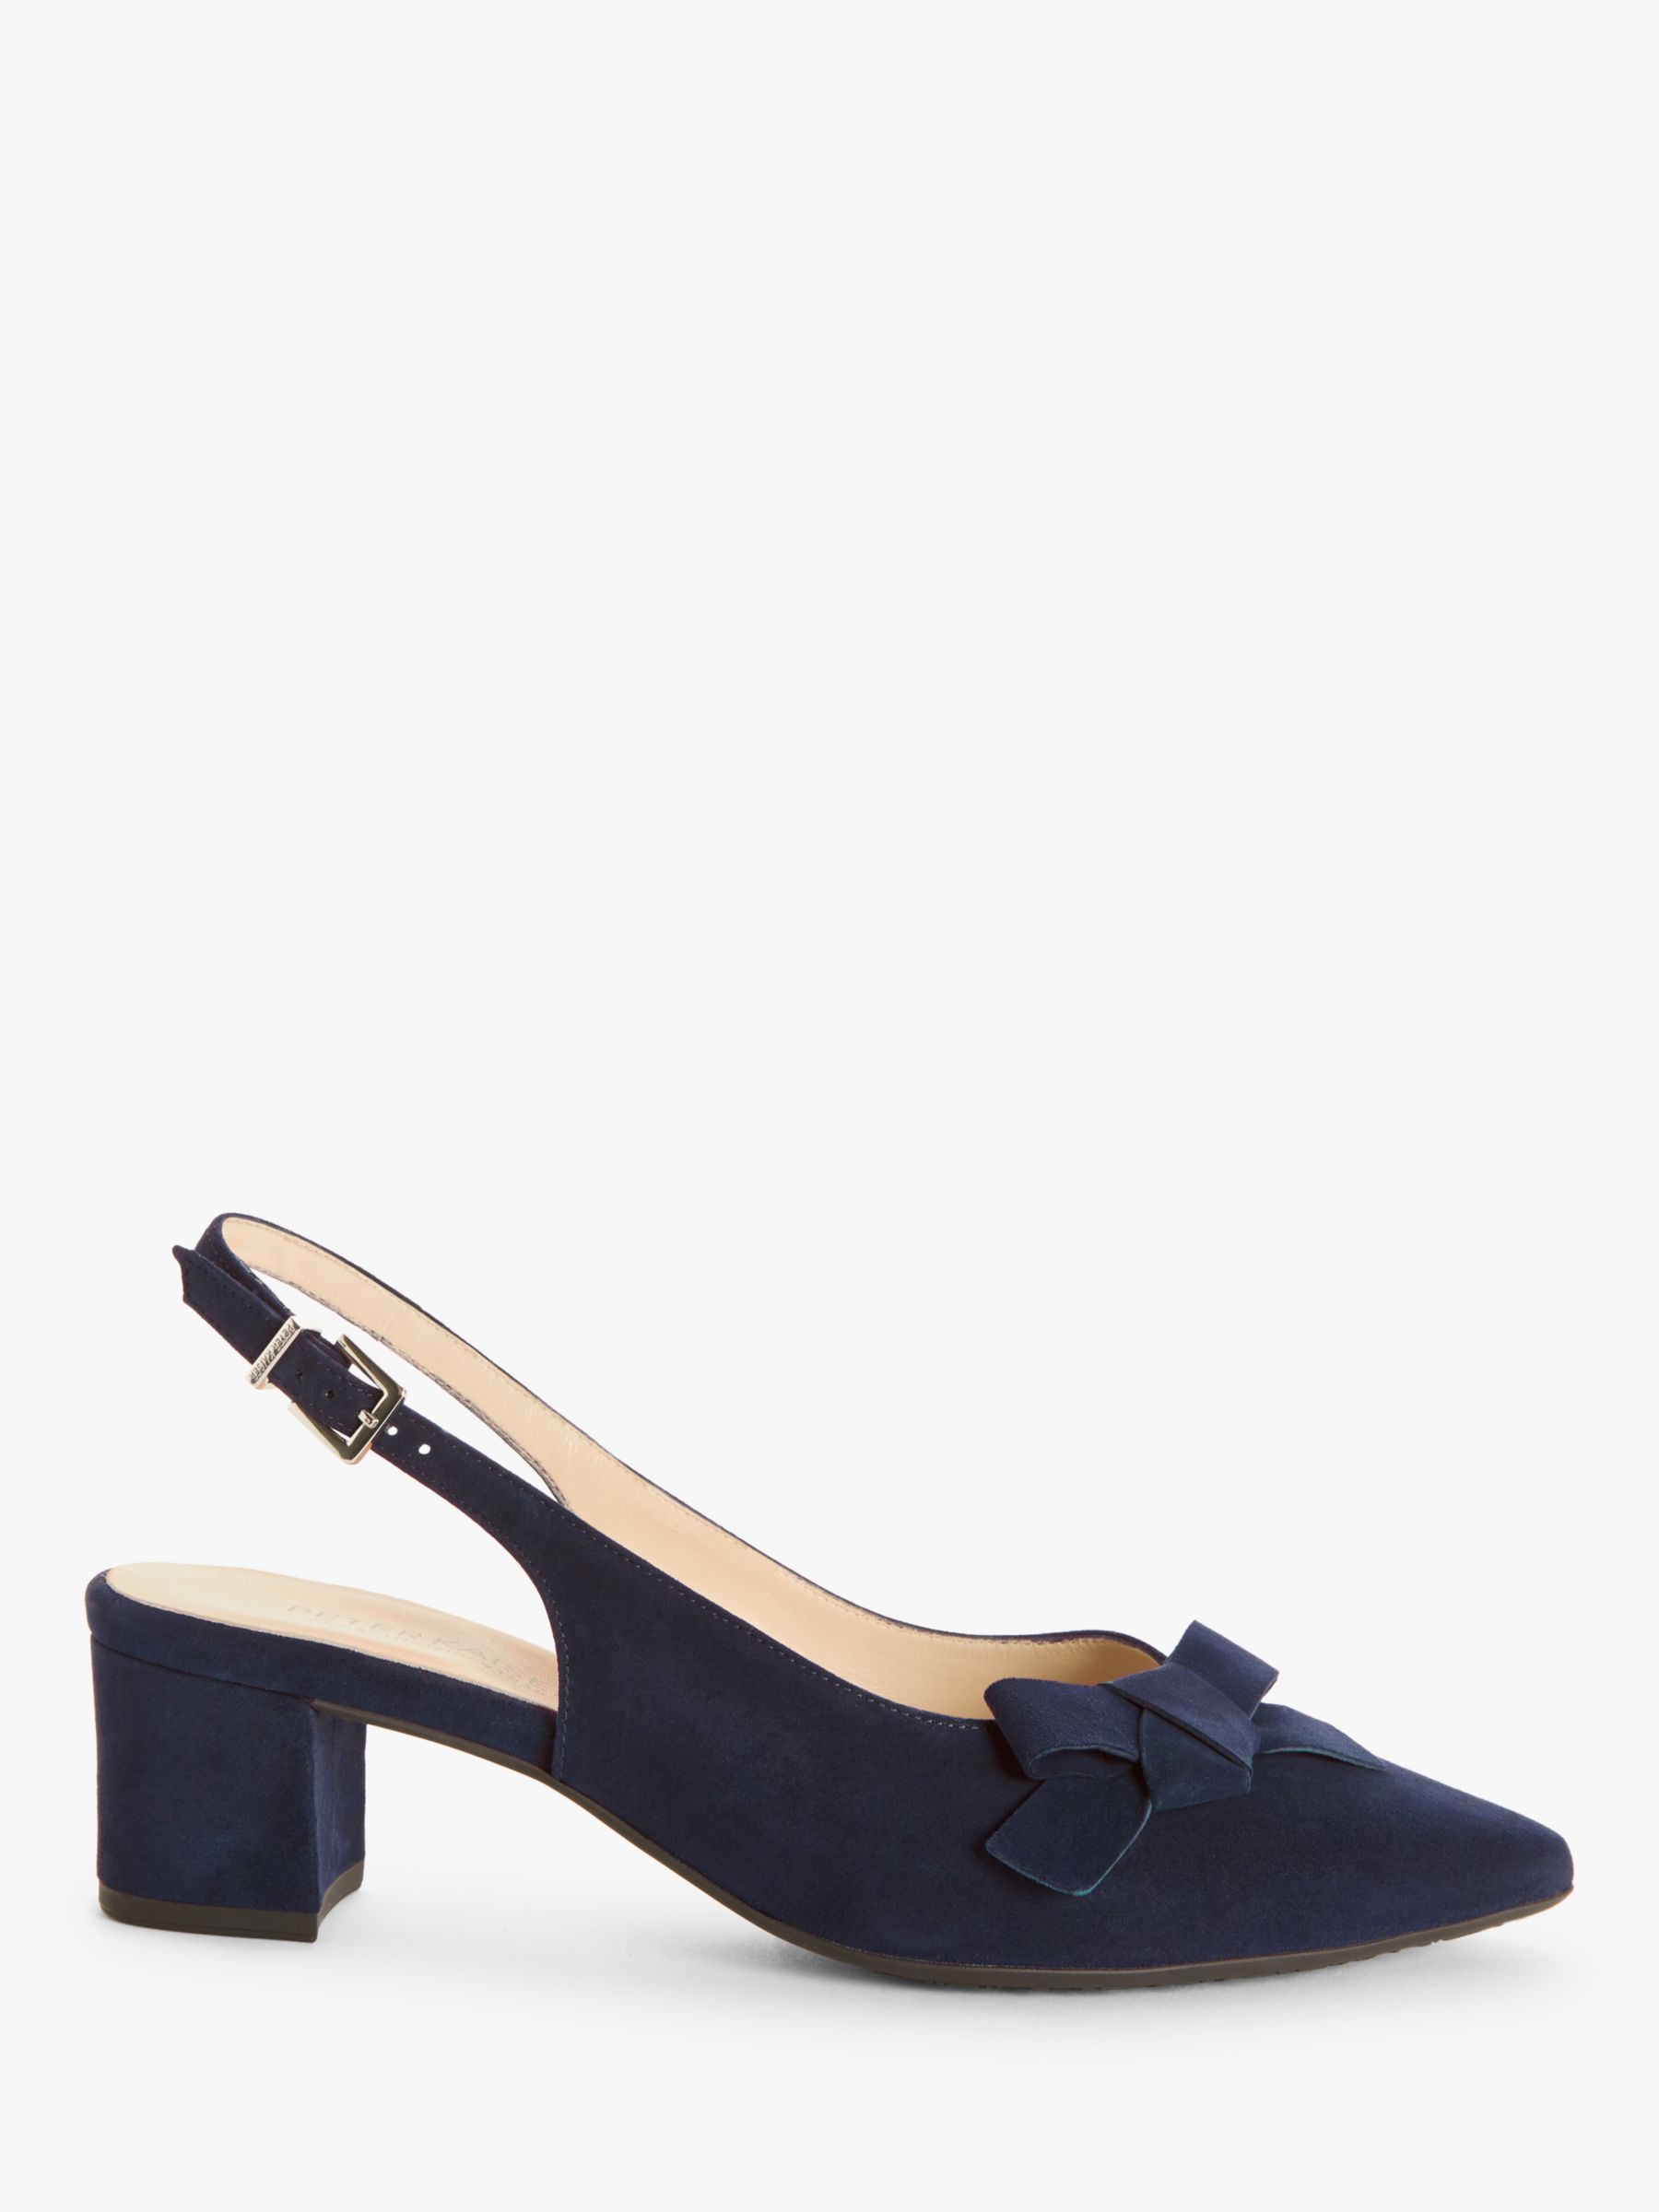 Peter Kaiser Peter Kaiser Shania Suede Bow Slingback Court Shoes, Navy